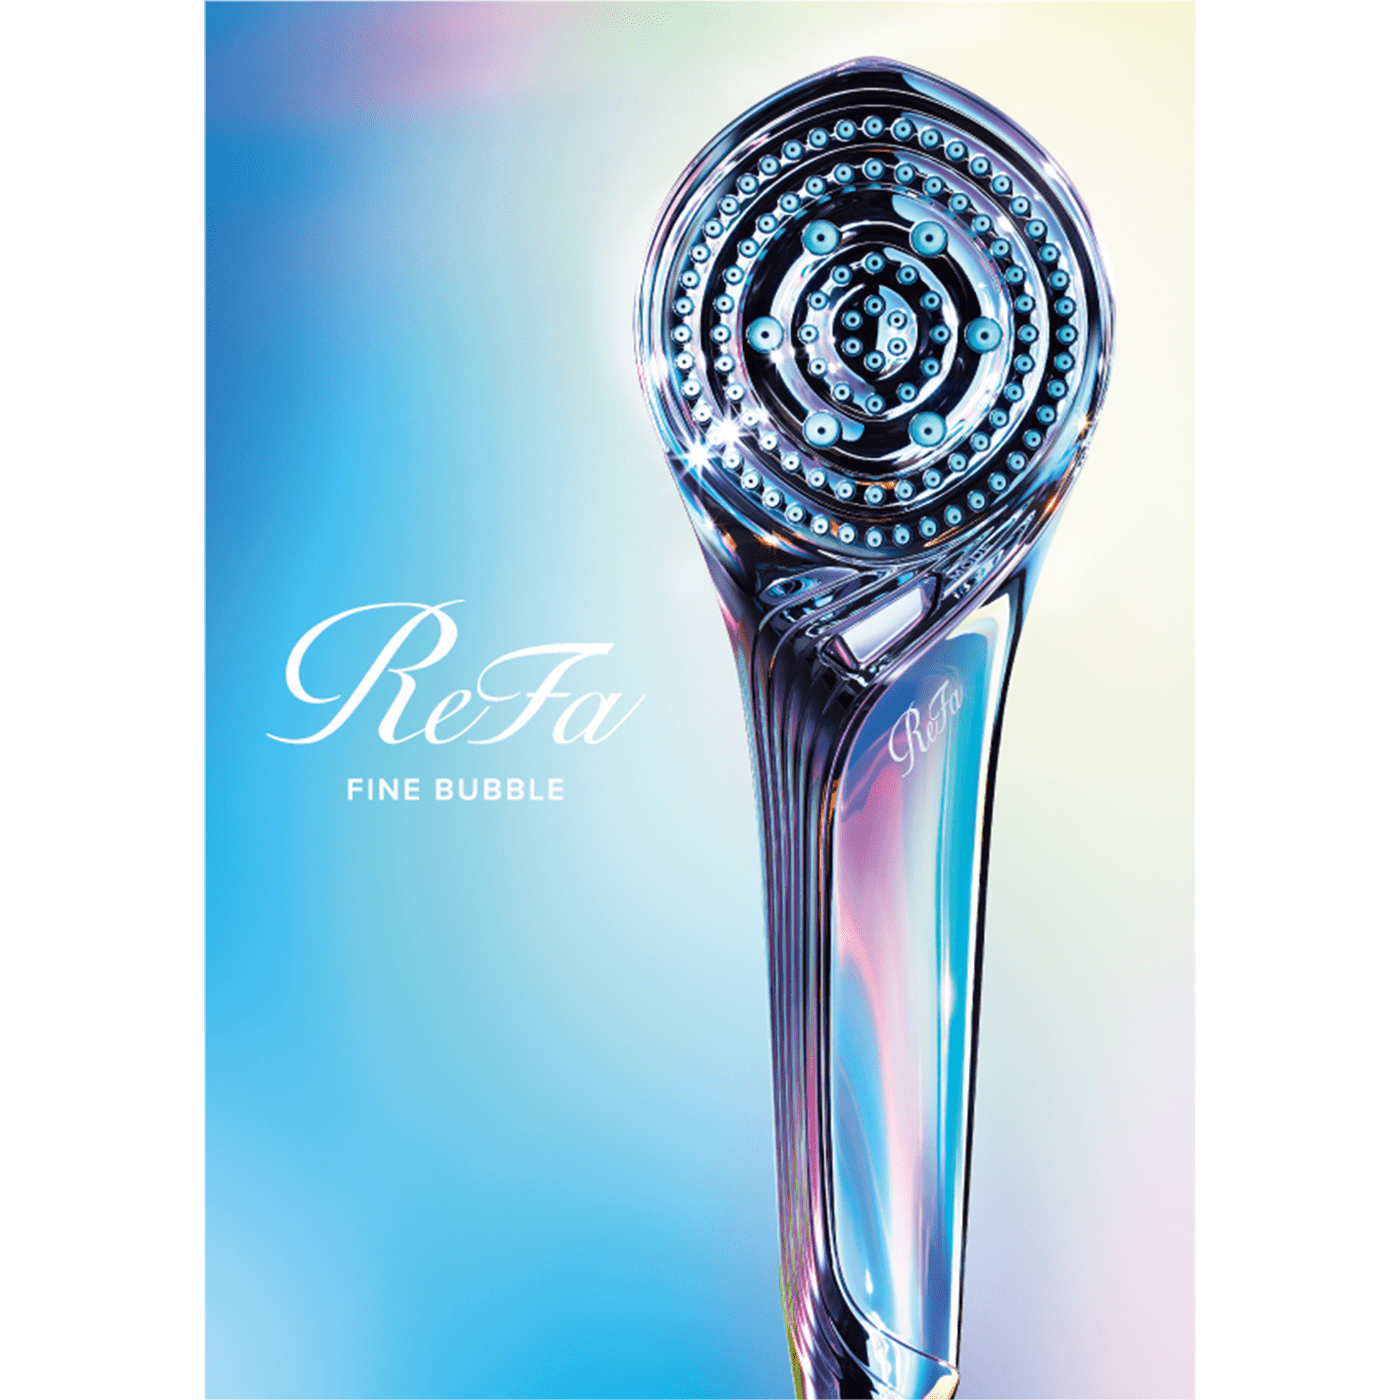 Introducing the ReFa FINE BUBBLE S: the newest high-tech shower head from ReFa that turns bath time into beauty time with an unprecedented number* of bubbles.